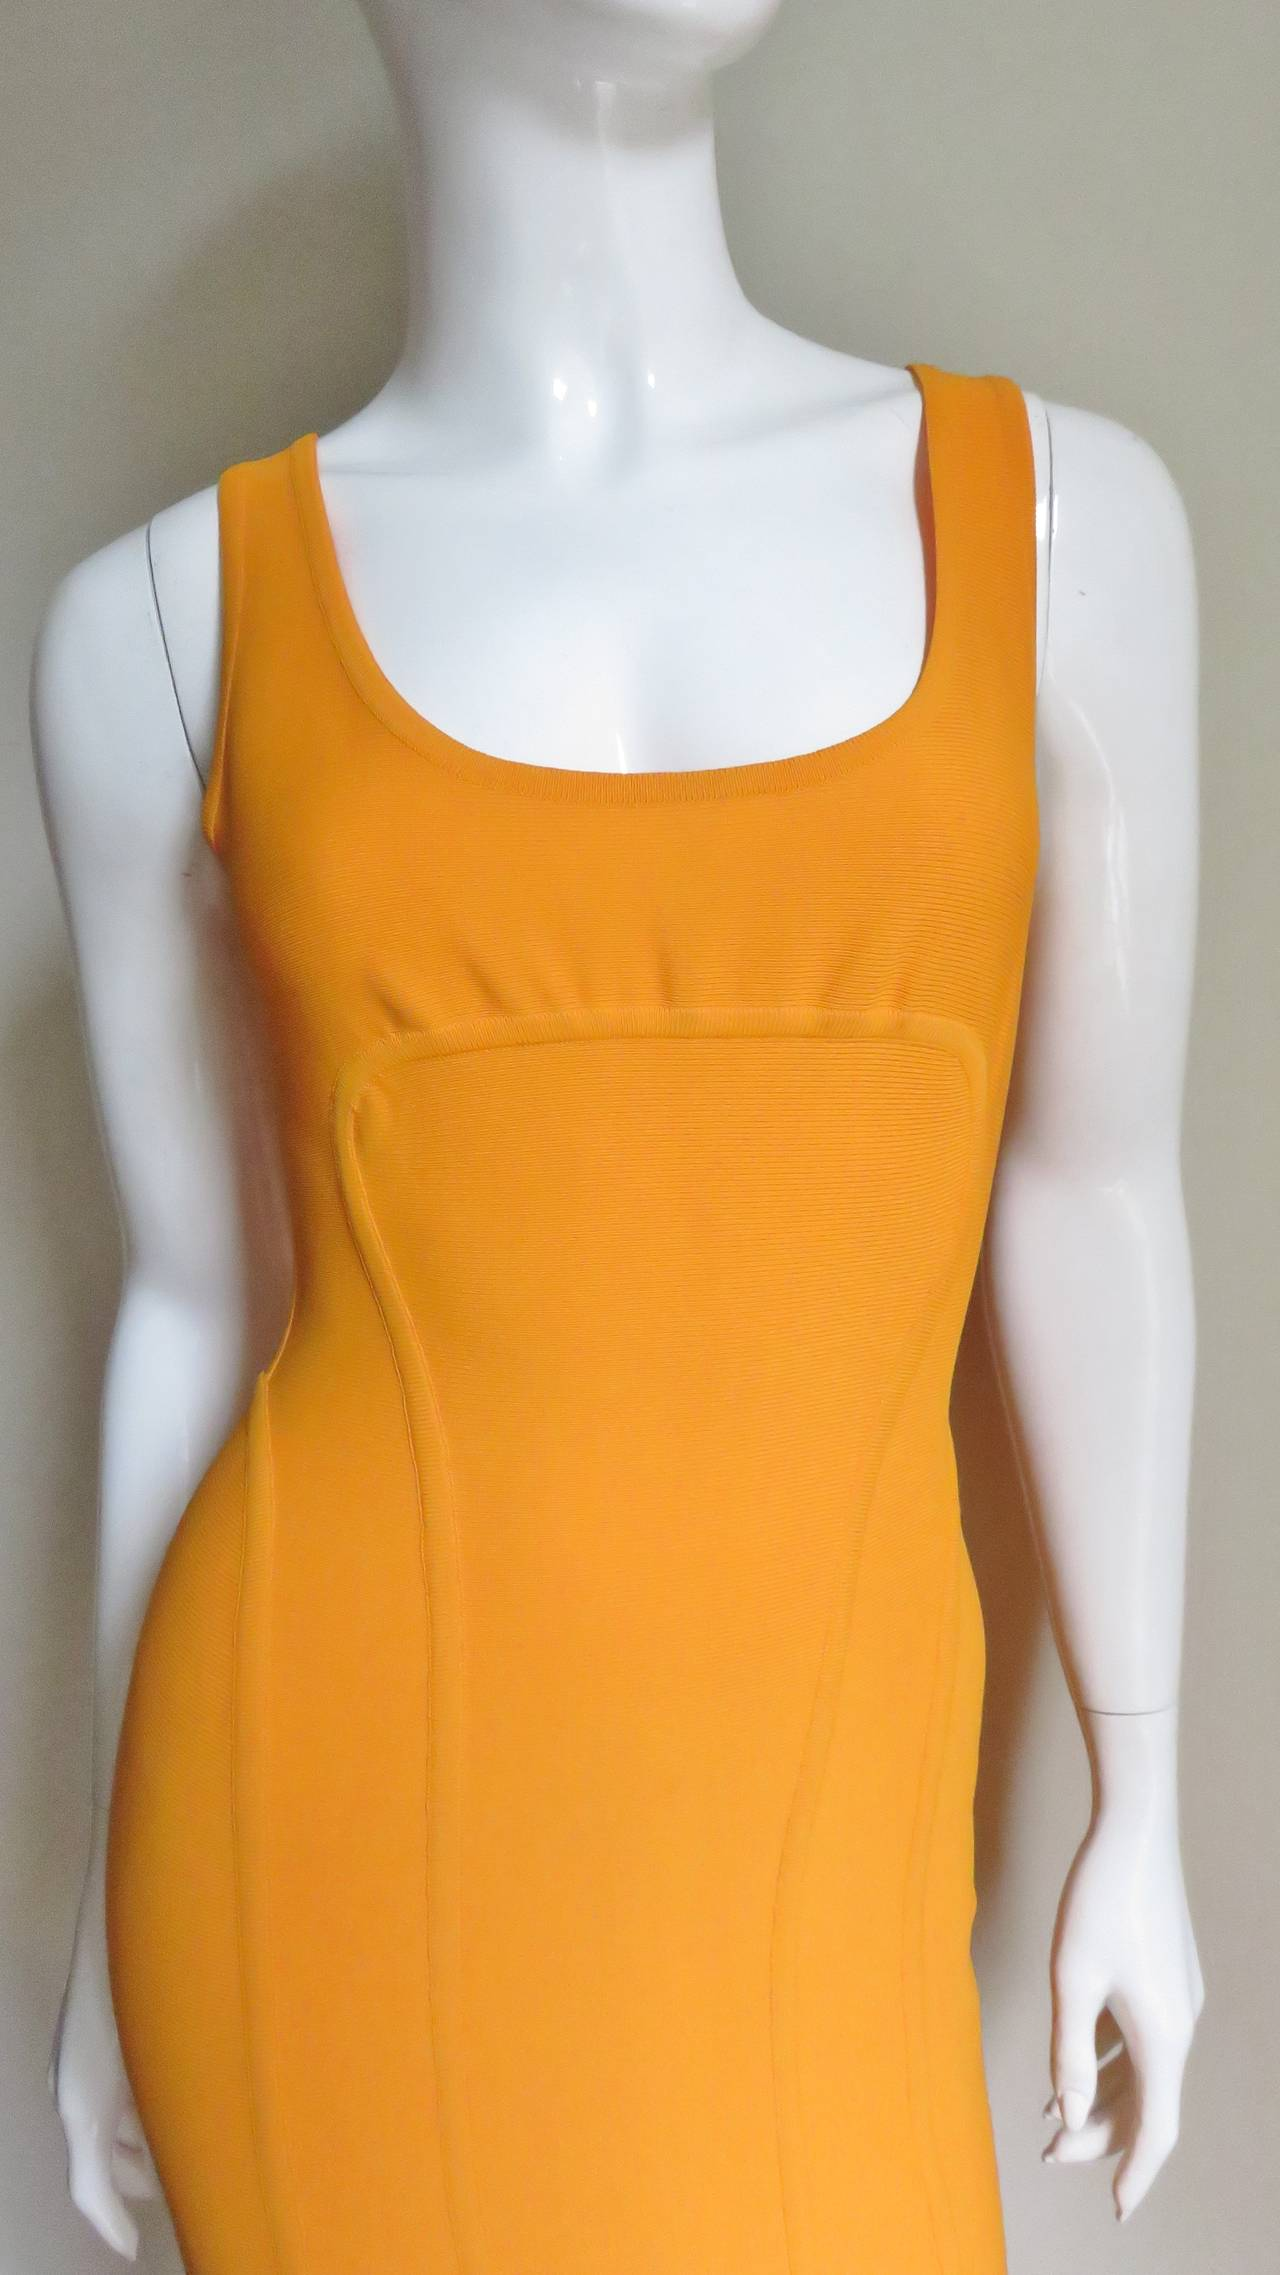 Orange Vintage Herve Leger Bodycon Dress For Sale